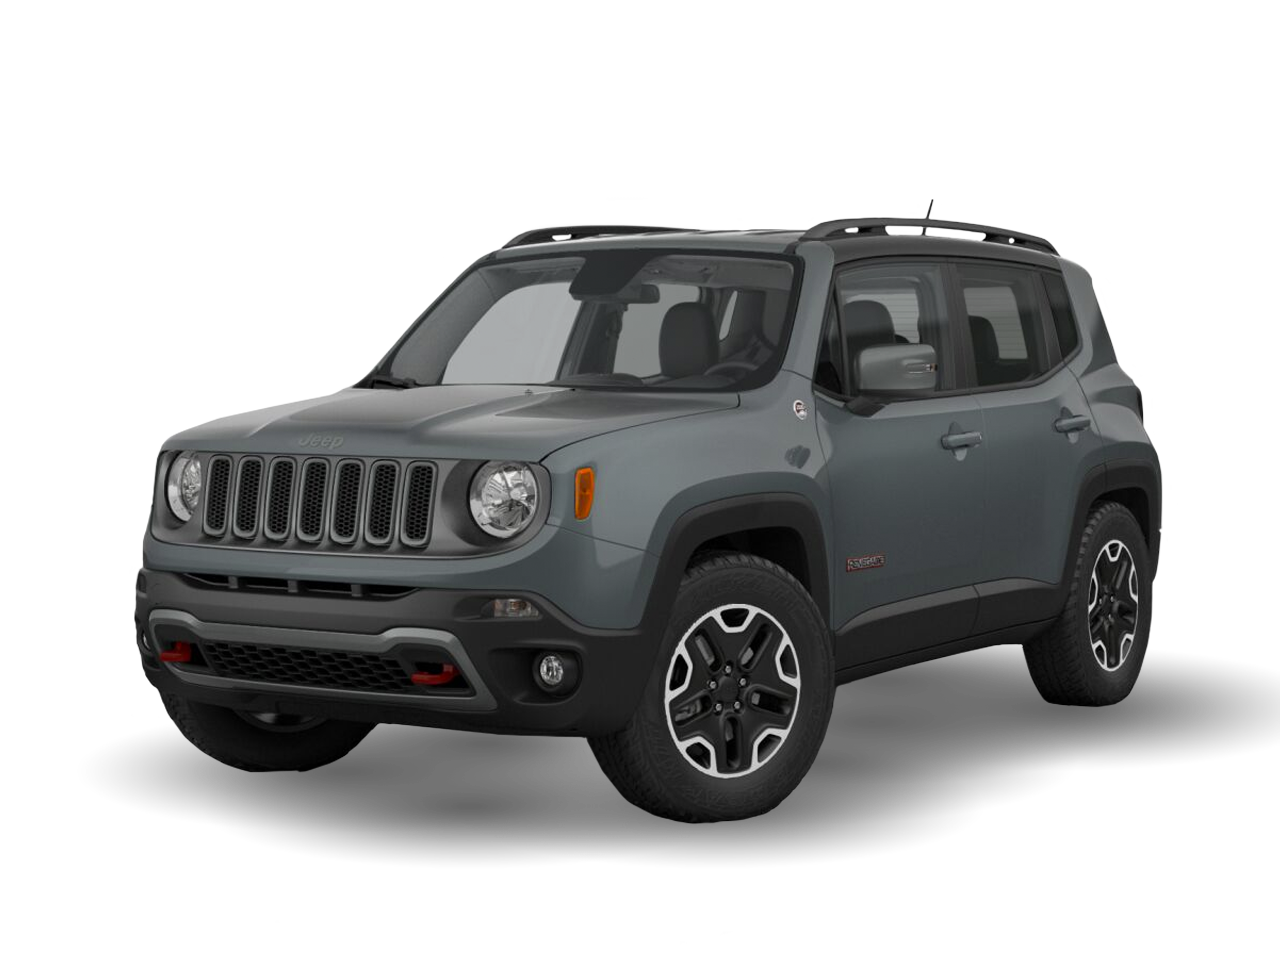 Moss Bros Jeep >> 2018 Jeep Renegade Moss Bros Chrysler Dodge Jeep Ram